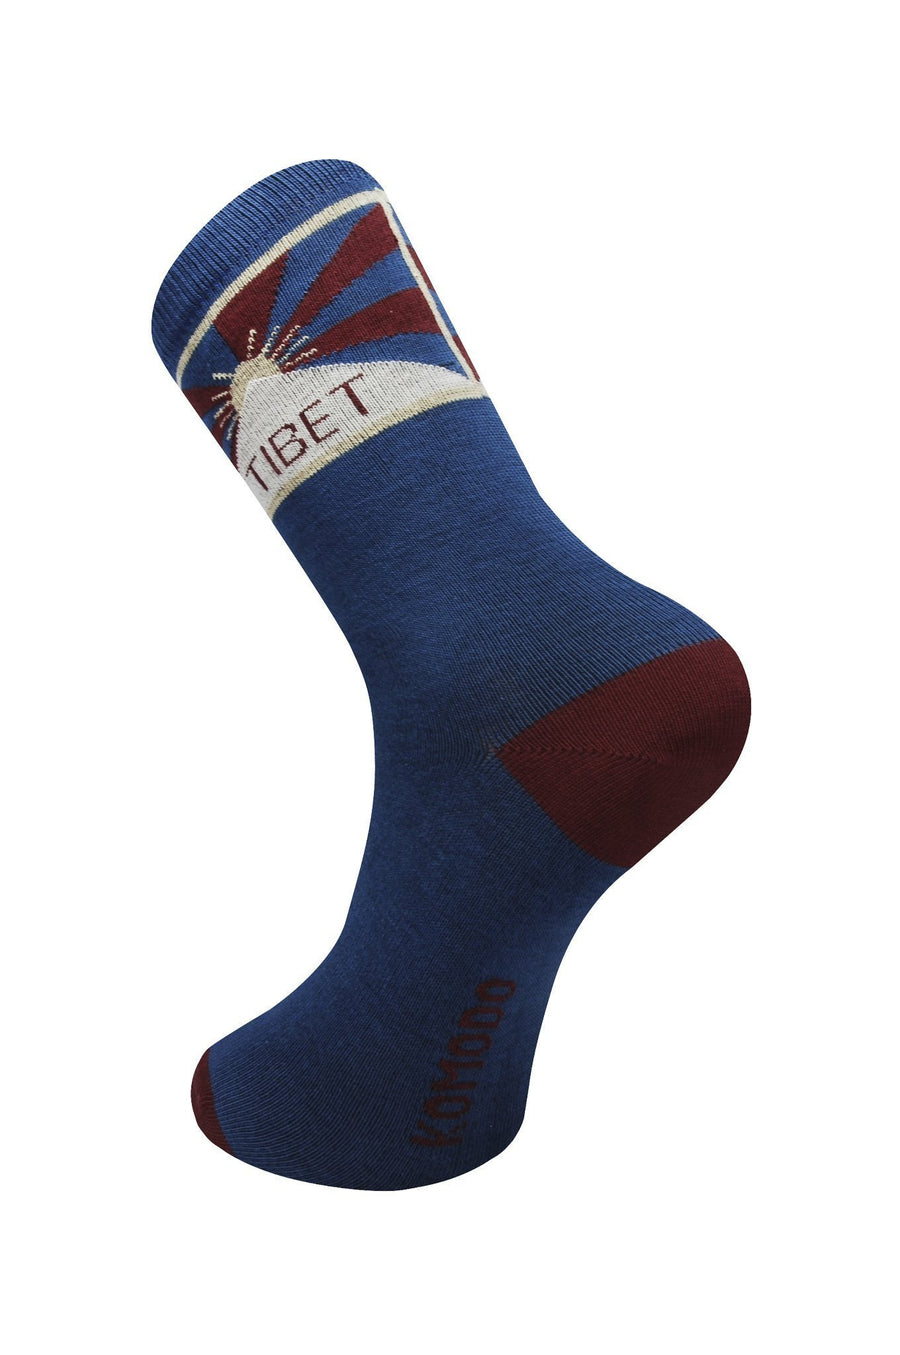 Womens Organic Socks - Free Tibet Navy - Issara Fairtrade